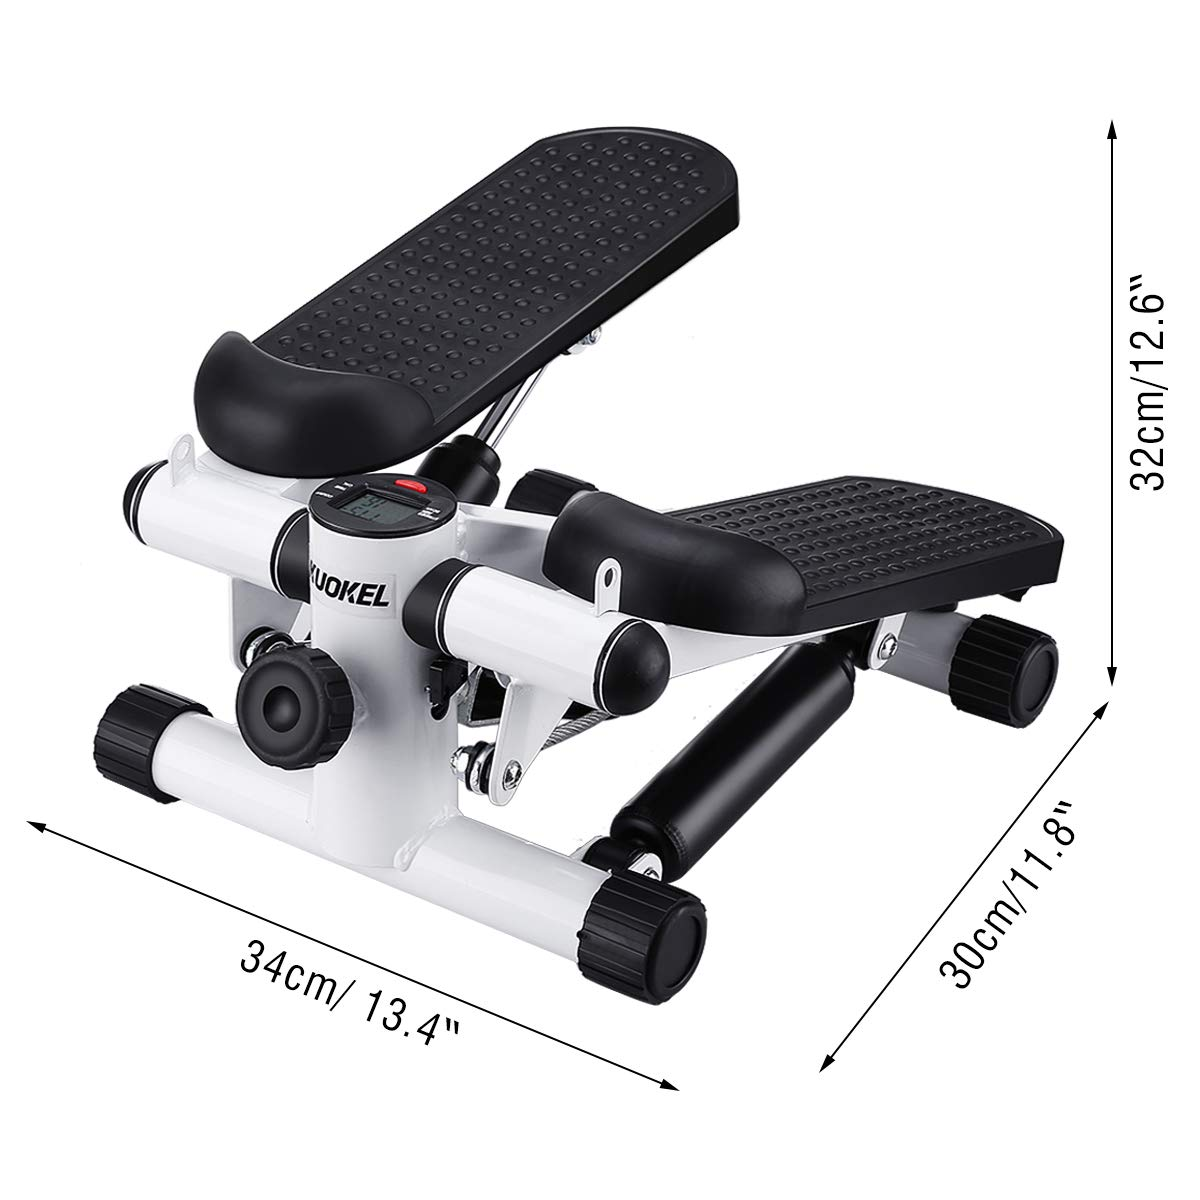 KUOKEL Title Mini Stepper,Mini Fitness Exercise Machine-Mini Elliptical Foot Pedal Stepper, Step Trainer Equipment with Resistance Bands Durable & Safe Treadmill and Comfortable Foot Pedals by KUOKEL (Image #4)